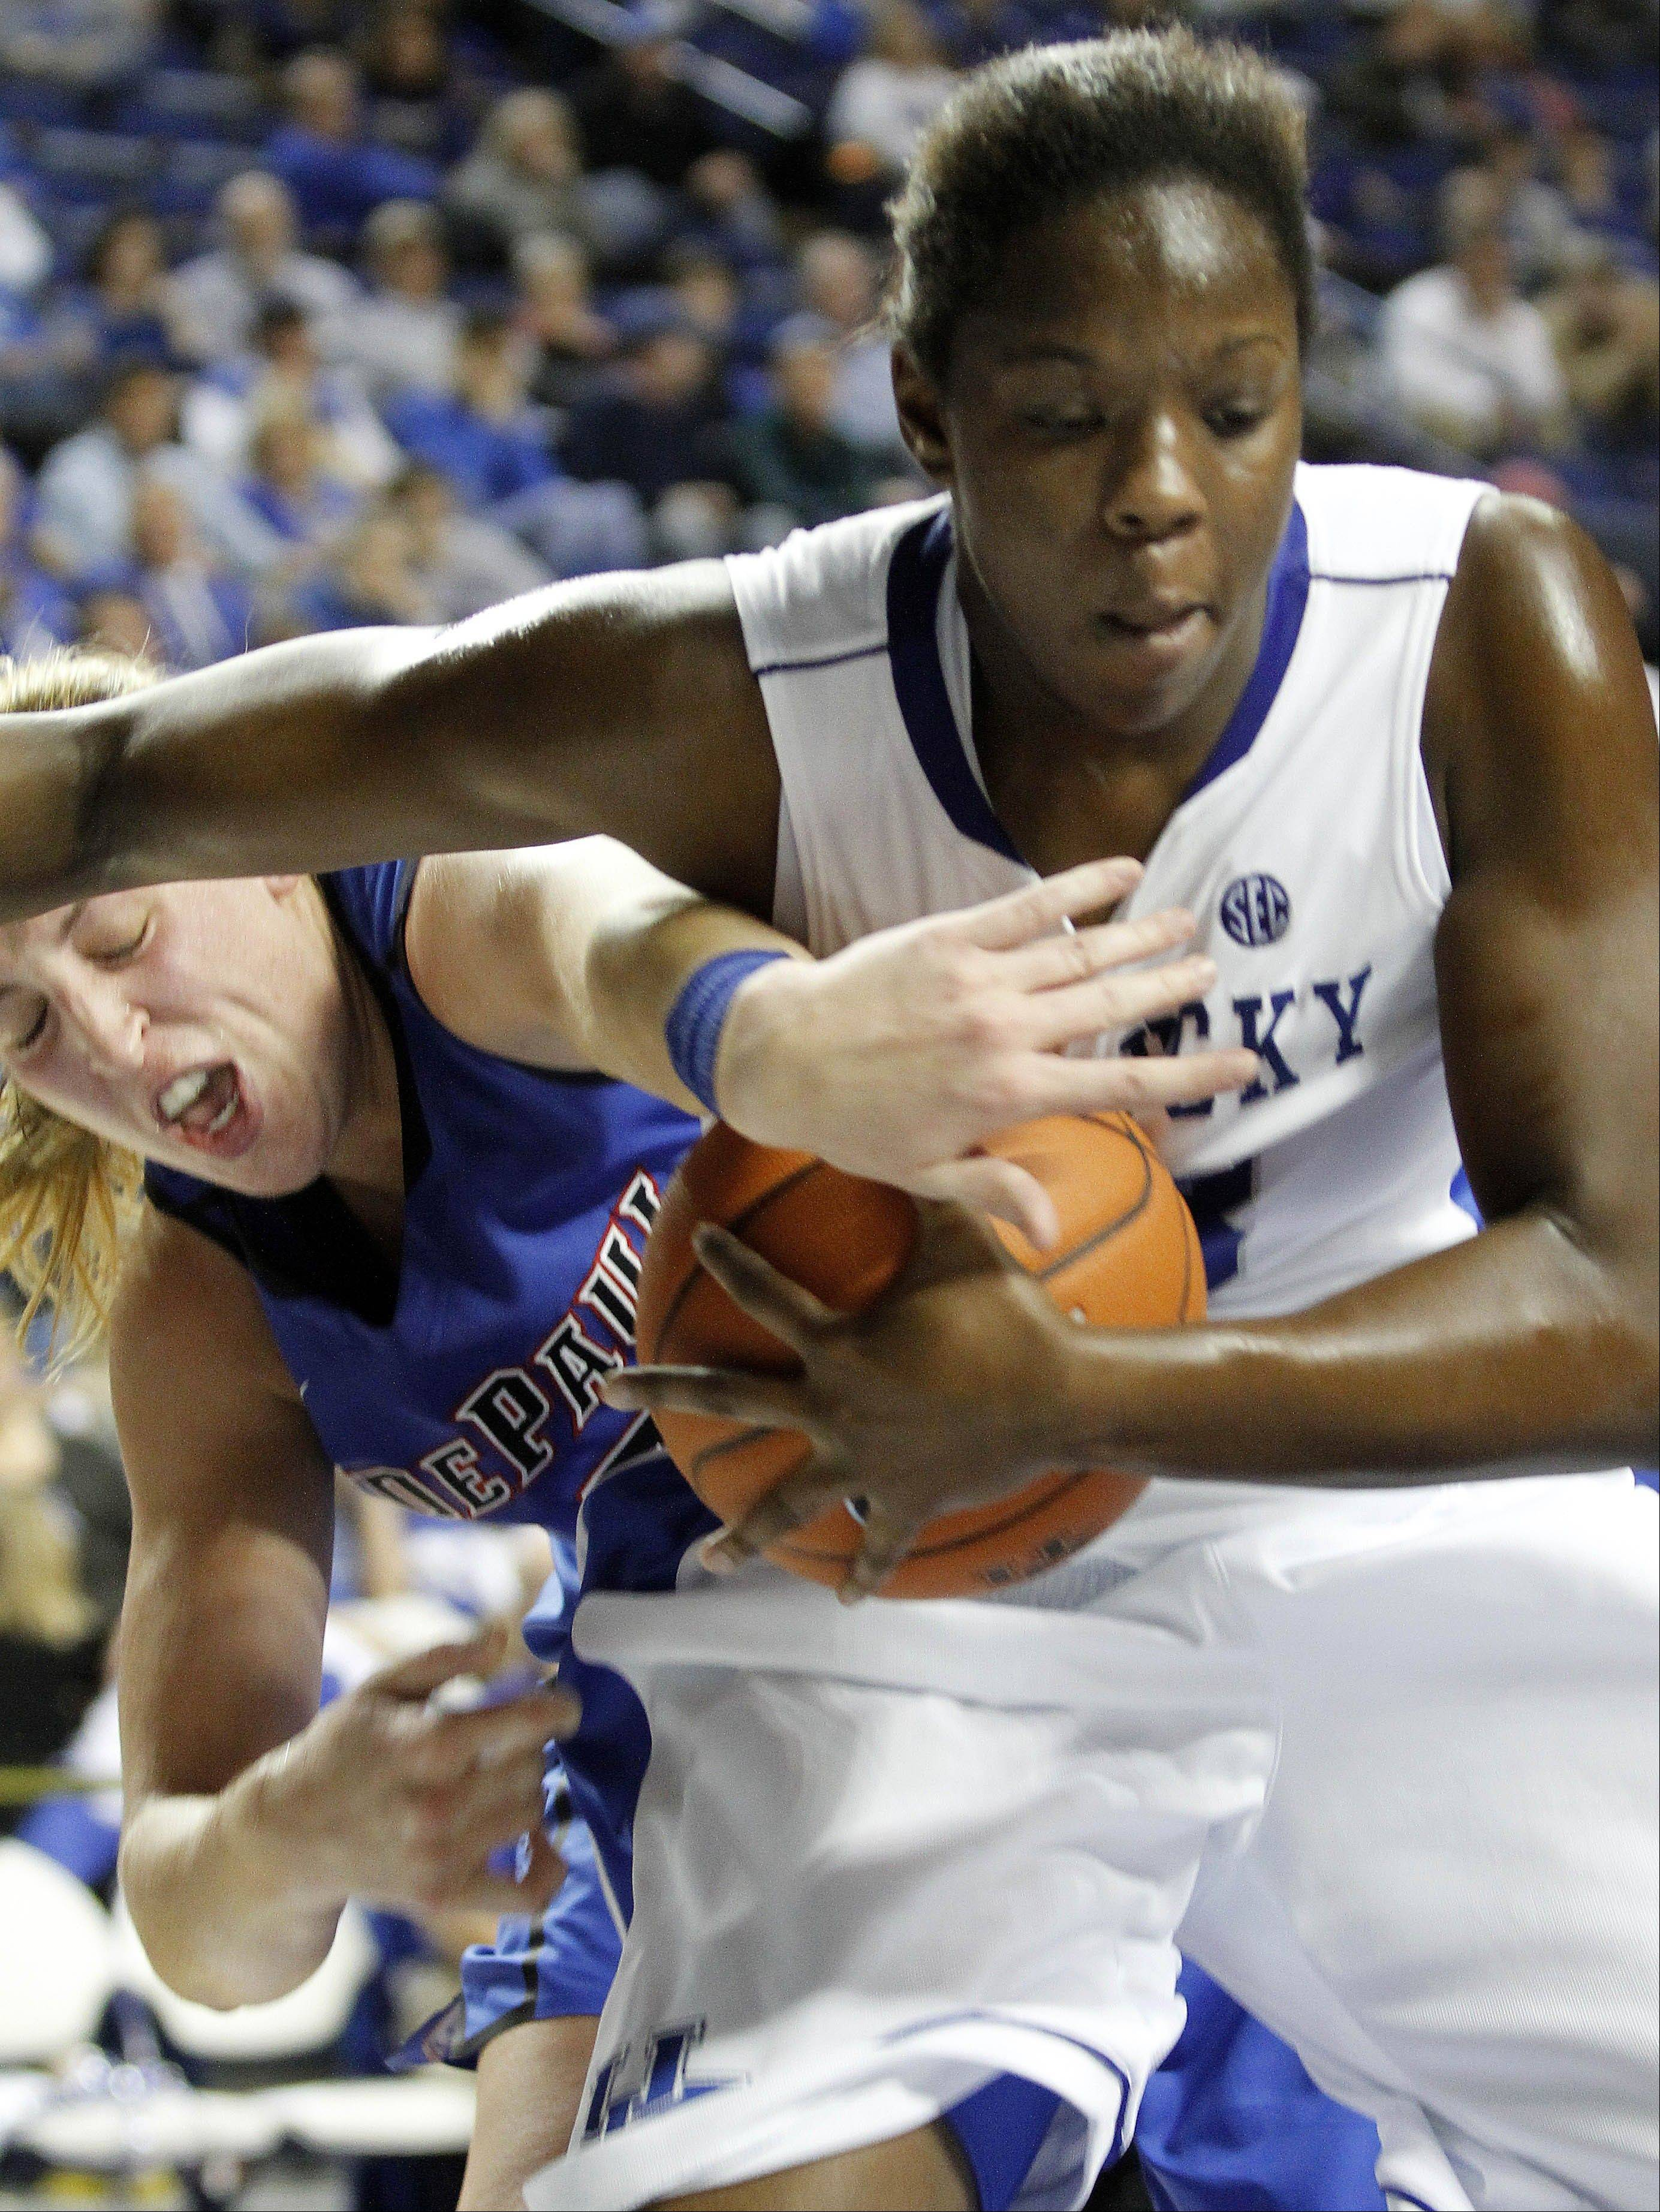 Kentucky's Samarie Walker, right, is pressured by DePaul's Katherine Harry, left, Friday during the second half at Rupp Arena in Lexington, Ky. Kentucky won 96-64.